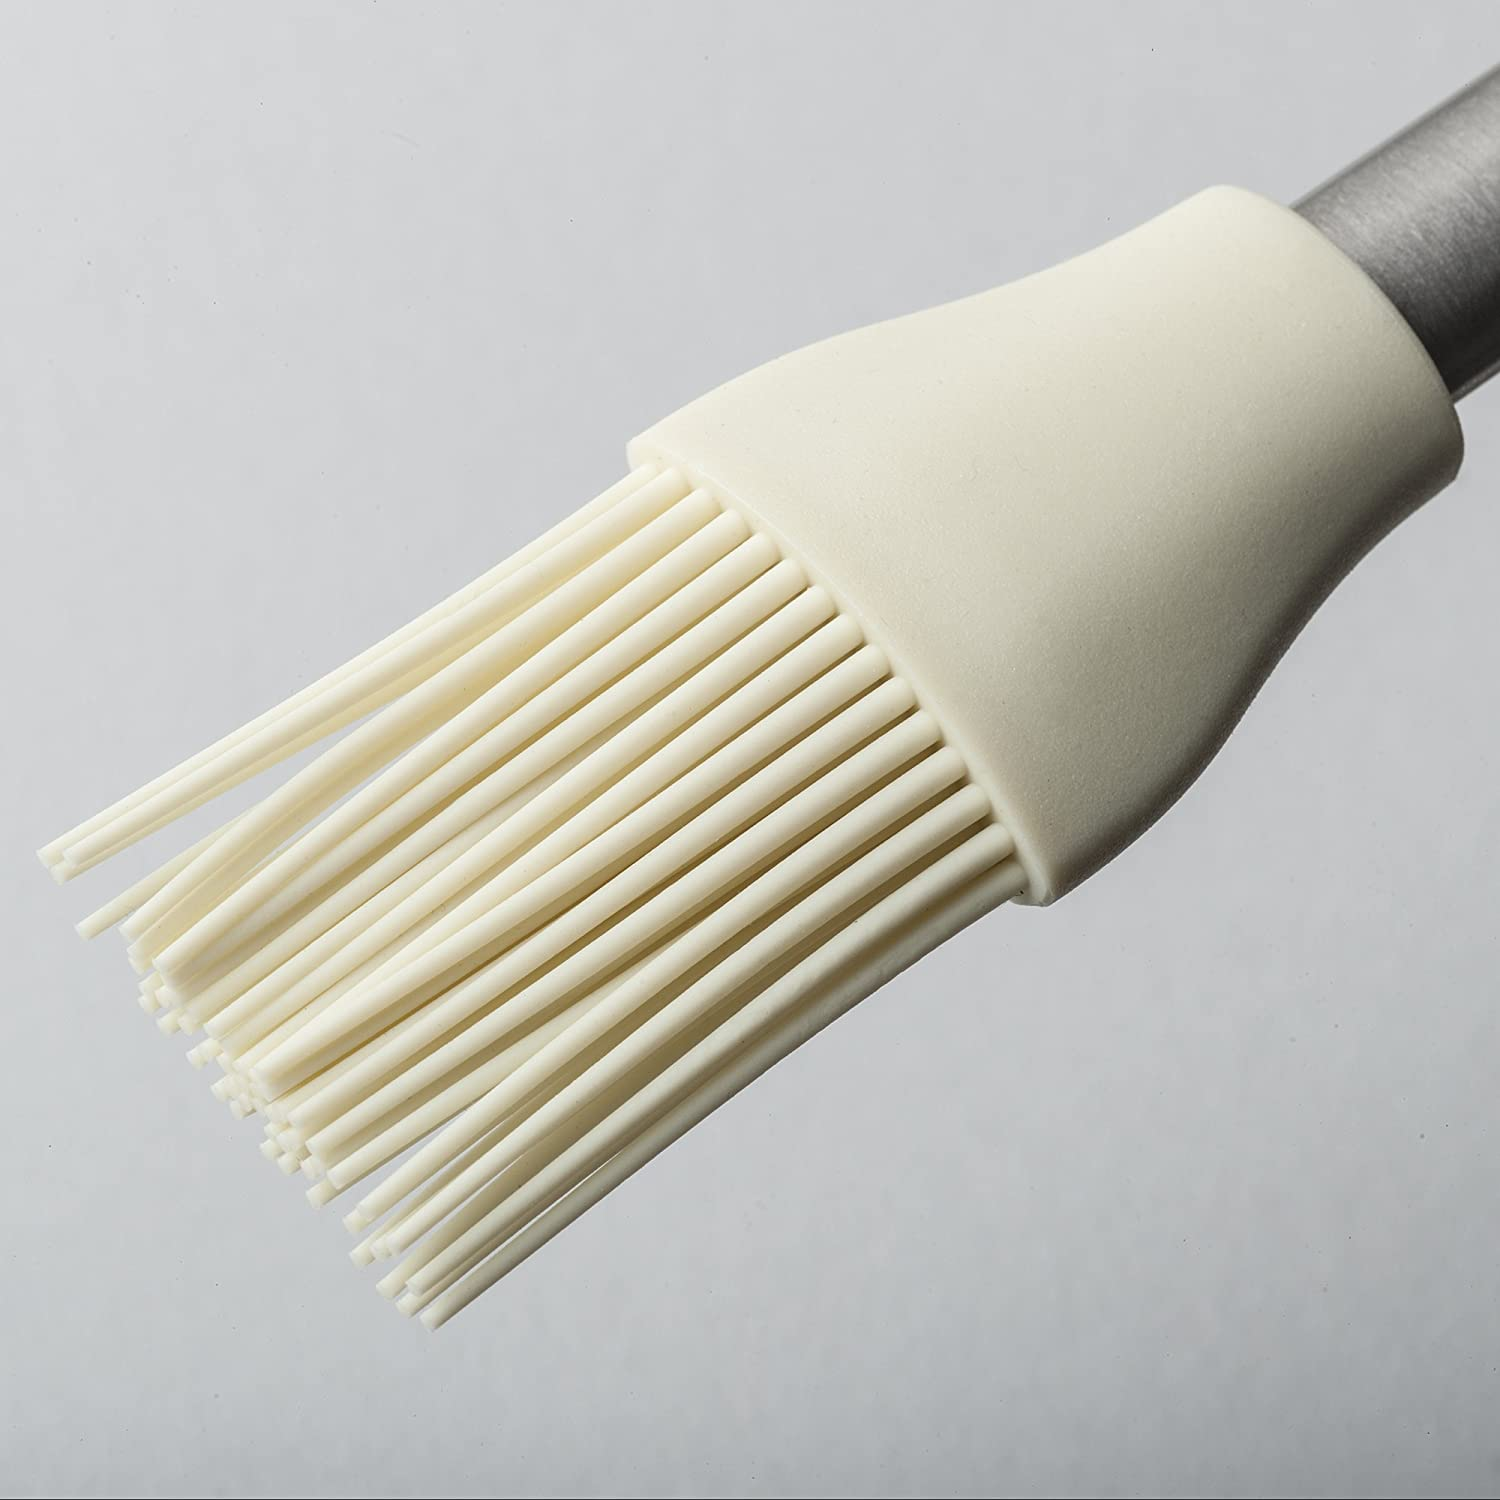 Zeal Pastry Basting Brush with Stainless Steel Handle, Silicone, Cream, 26 x 4 x 1.5 cm